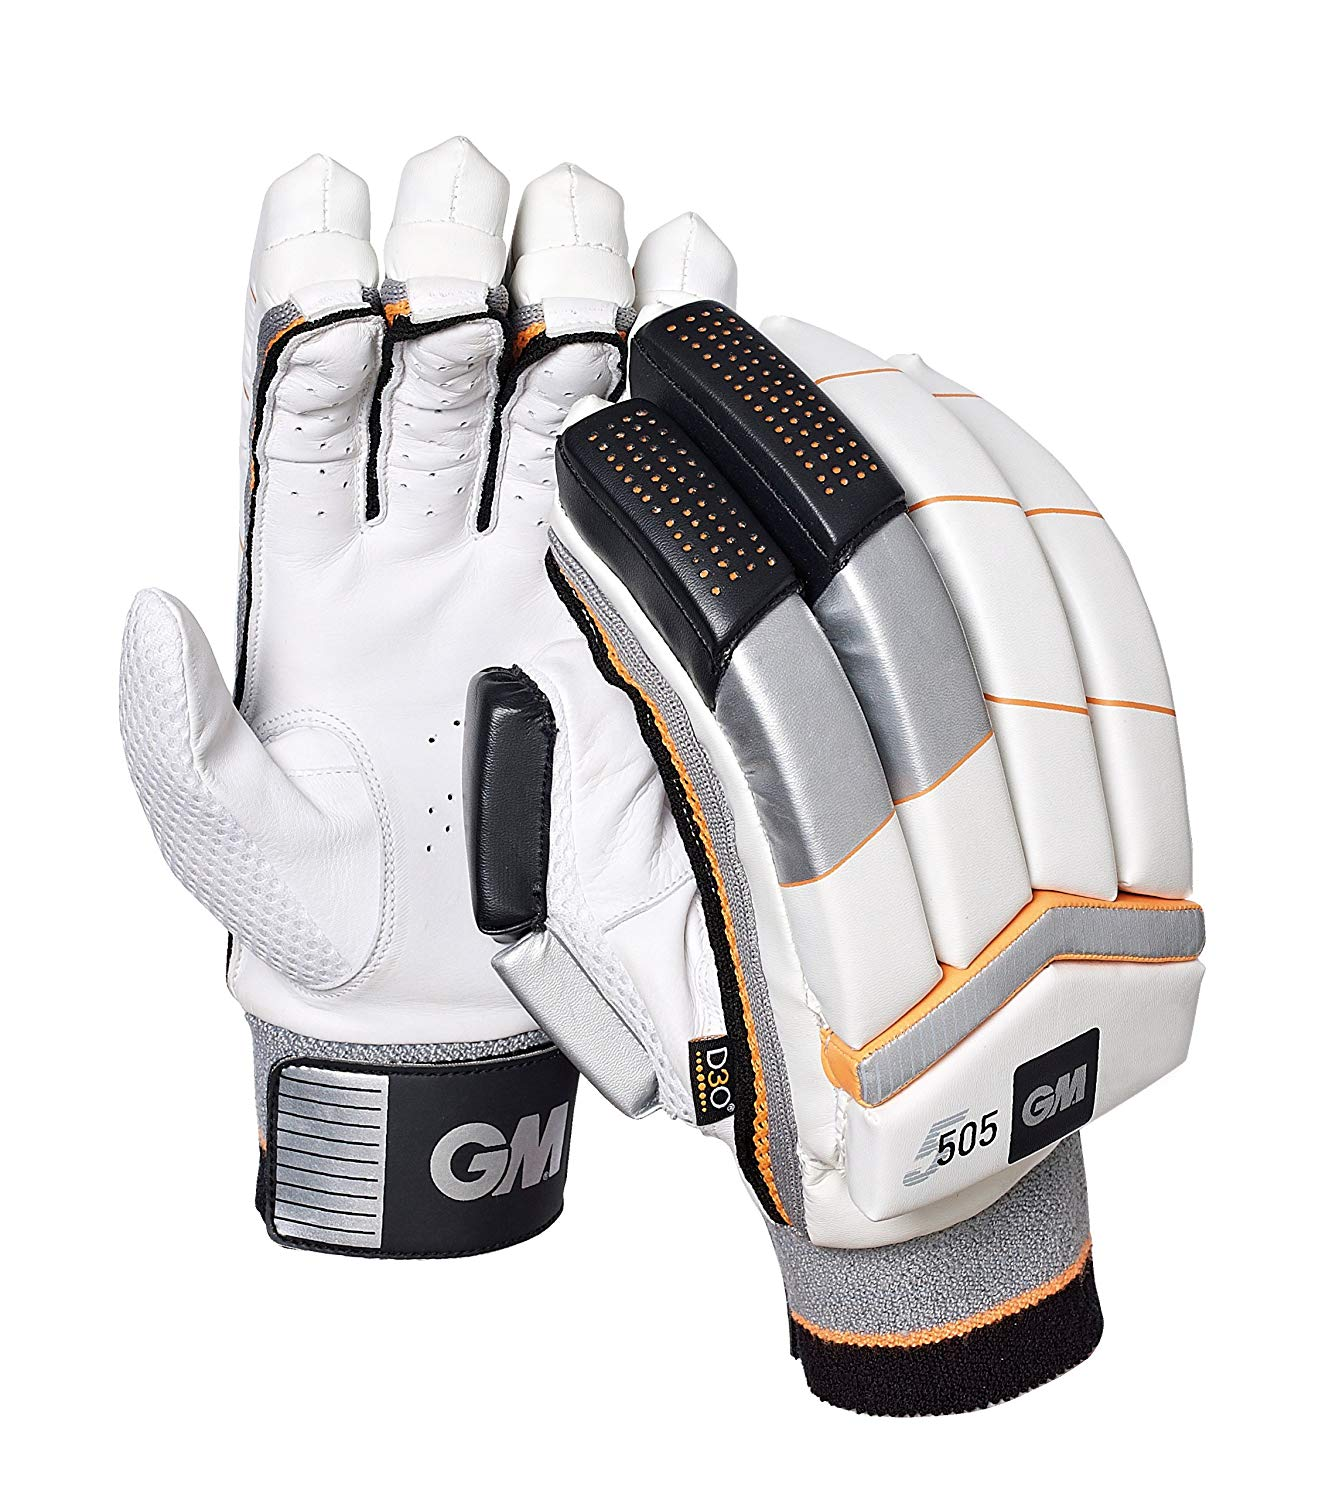 GM 505 D30 BATTING GLOVES